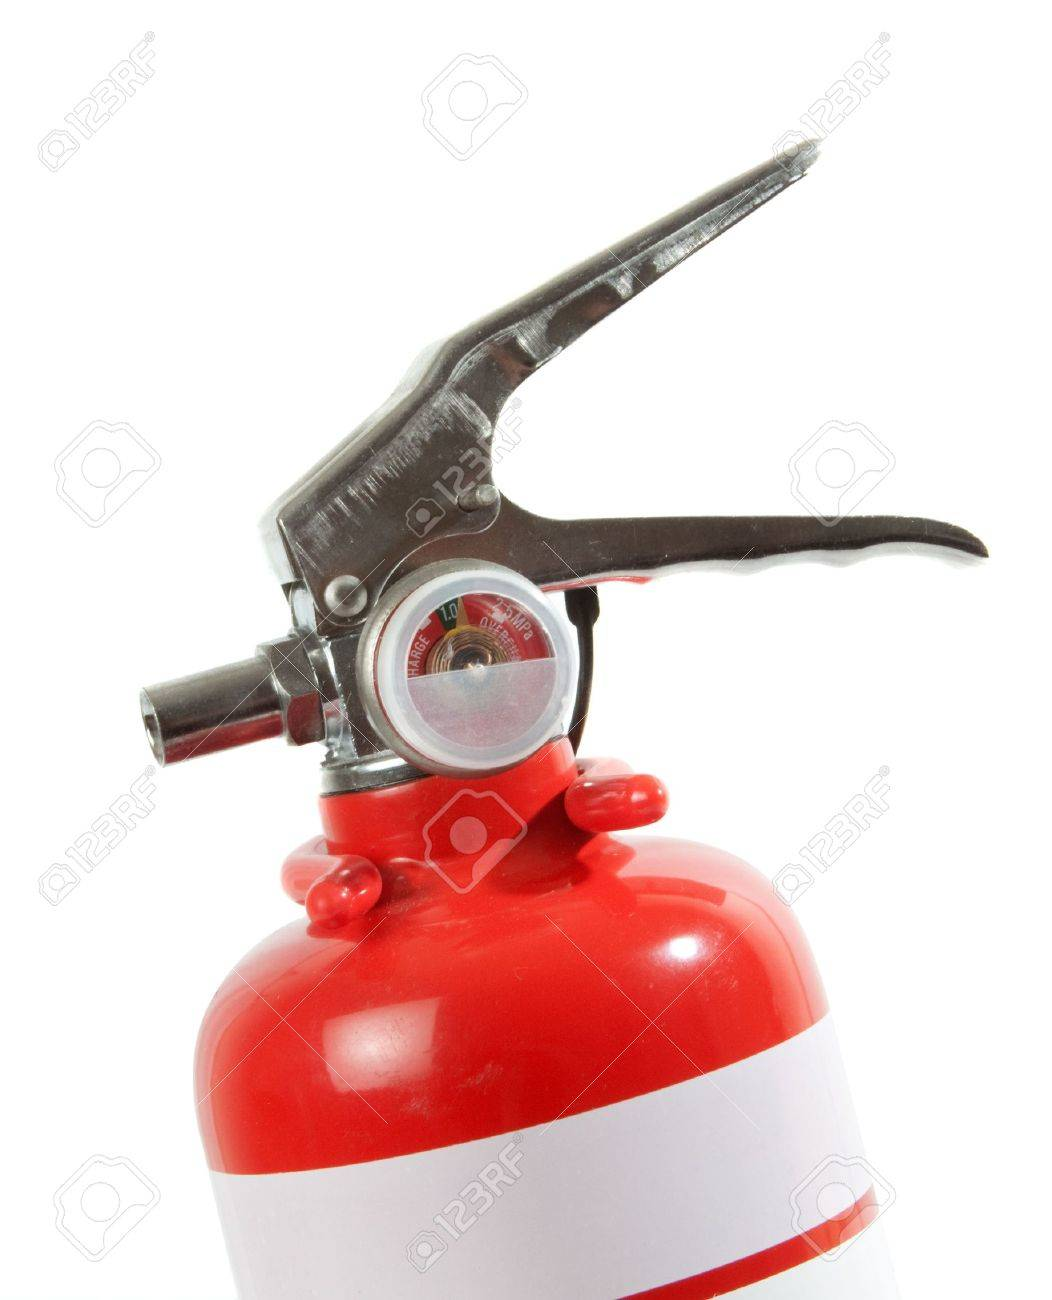 Portable Fire Extinguisher isolated over white background. Stock Photo - 6828317